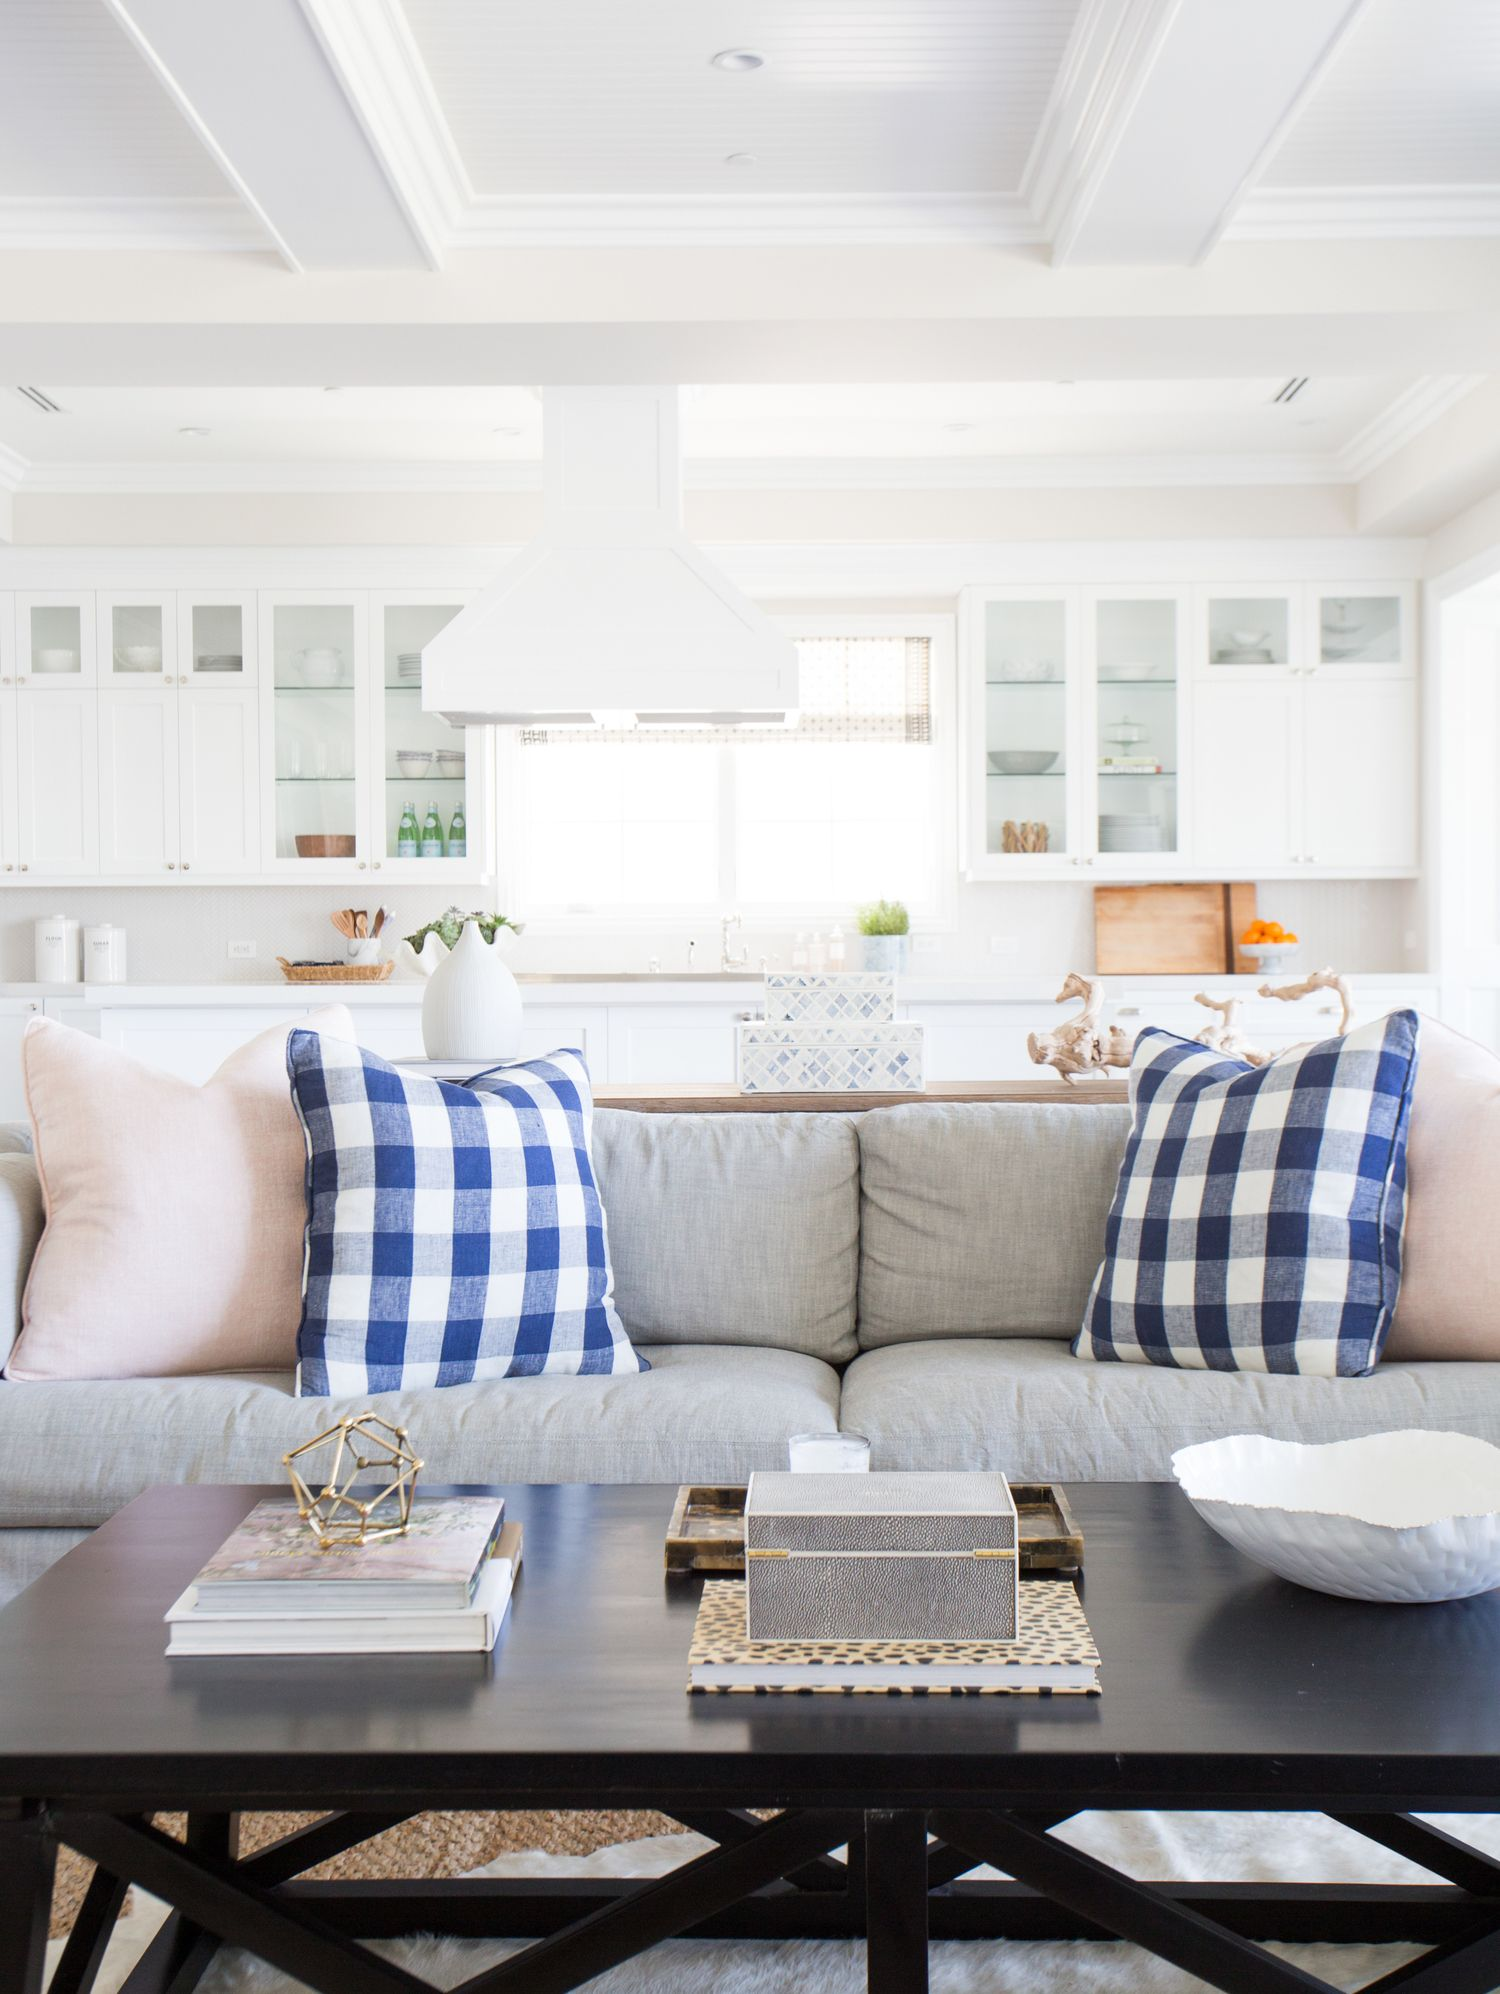 Pacific Palisades Project: Great Room & Kitchen | Studio mcgee ...